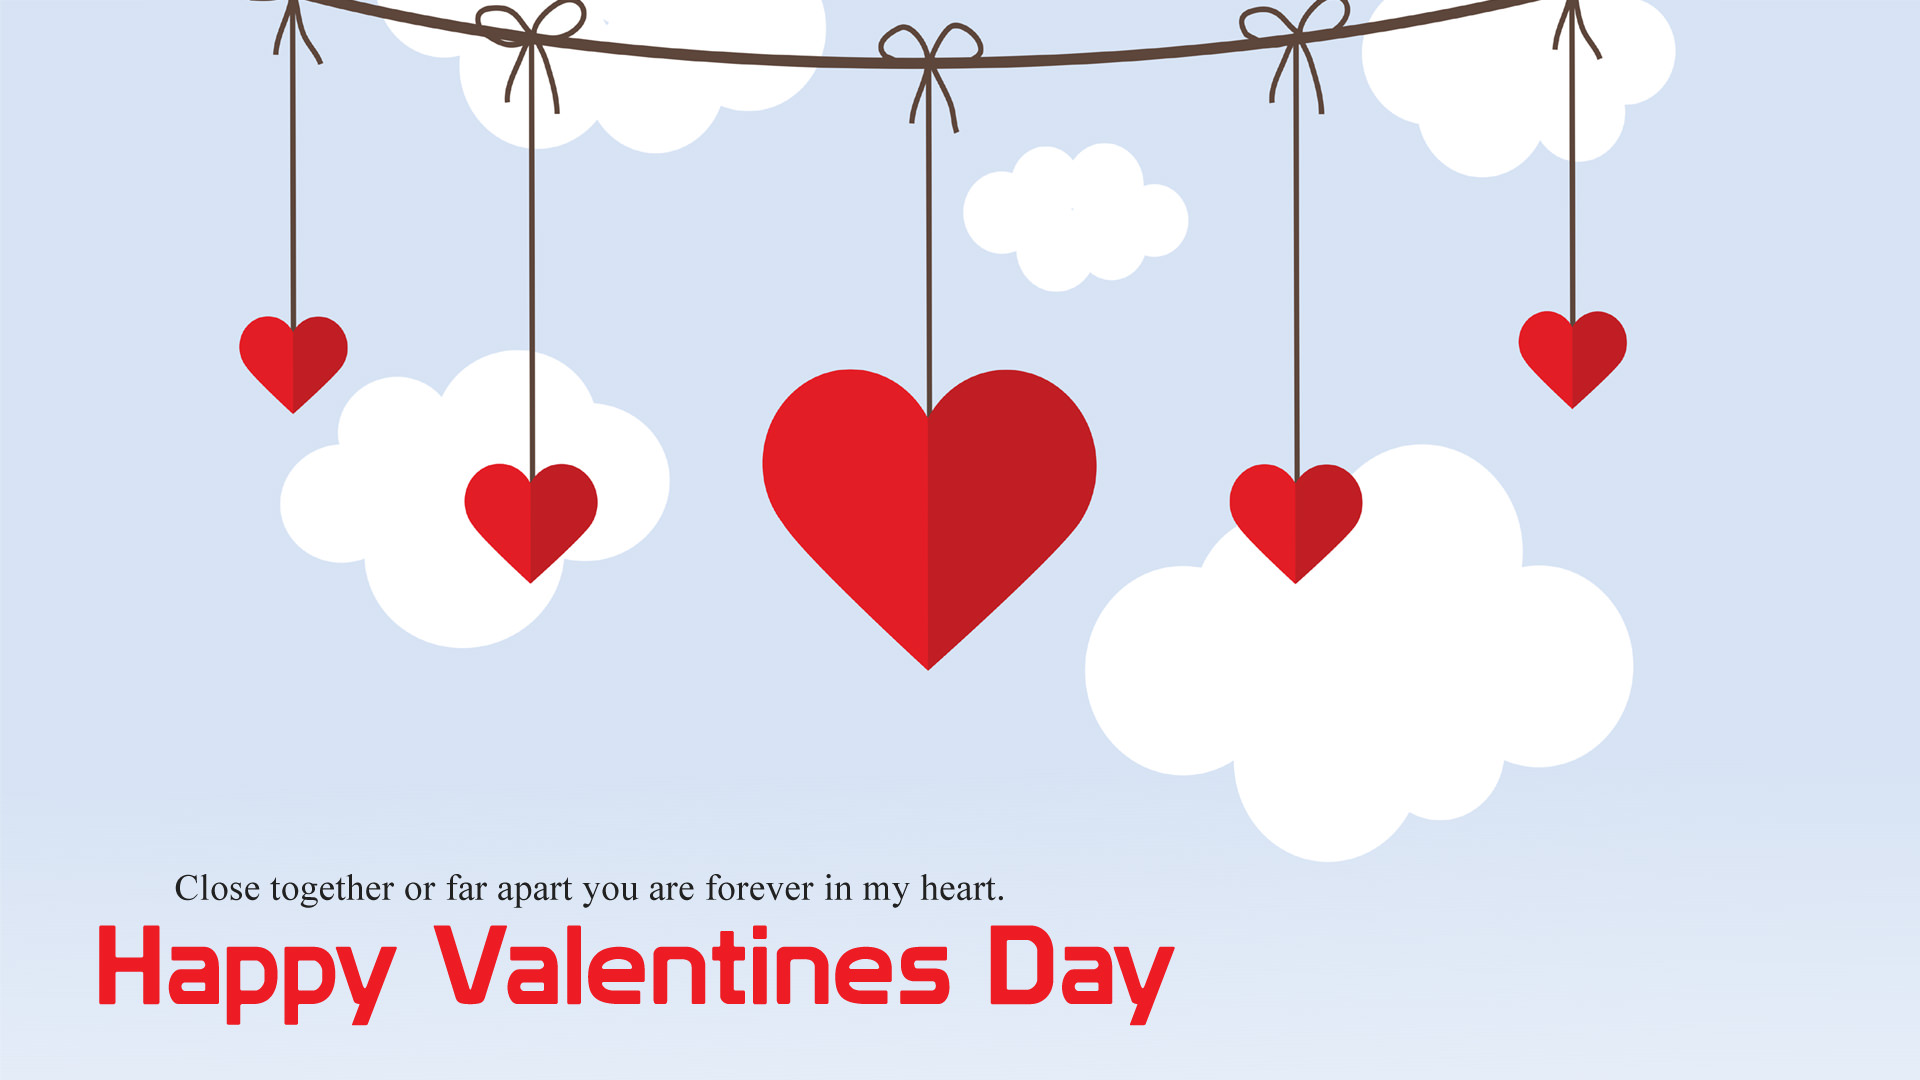 14 feb happy valentines day wallpaper, full hd special love images